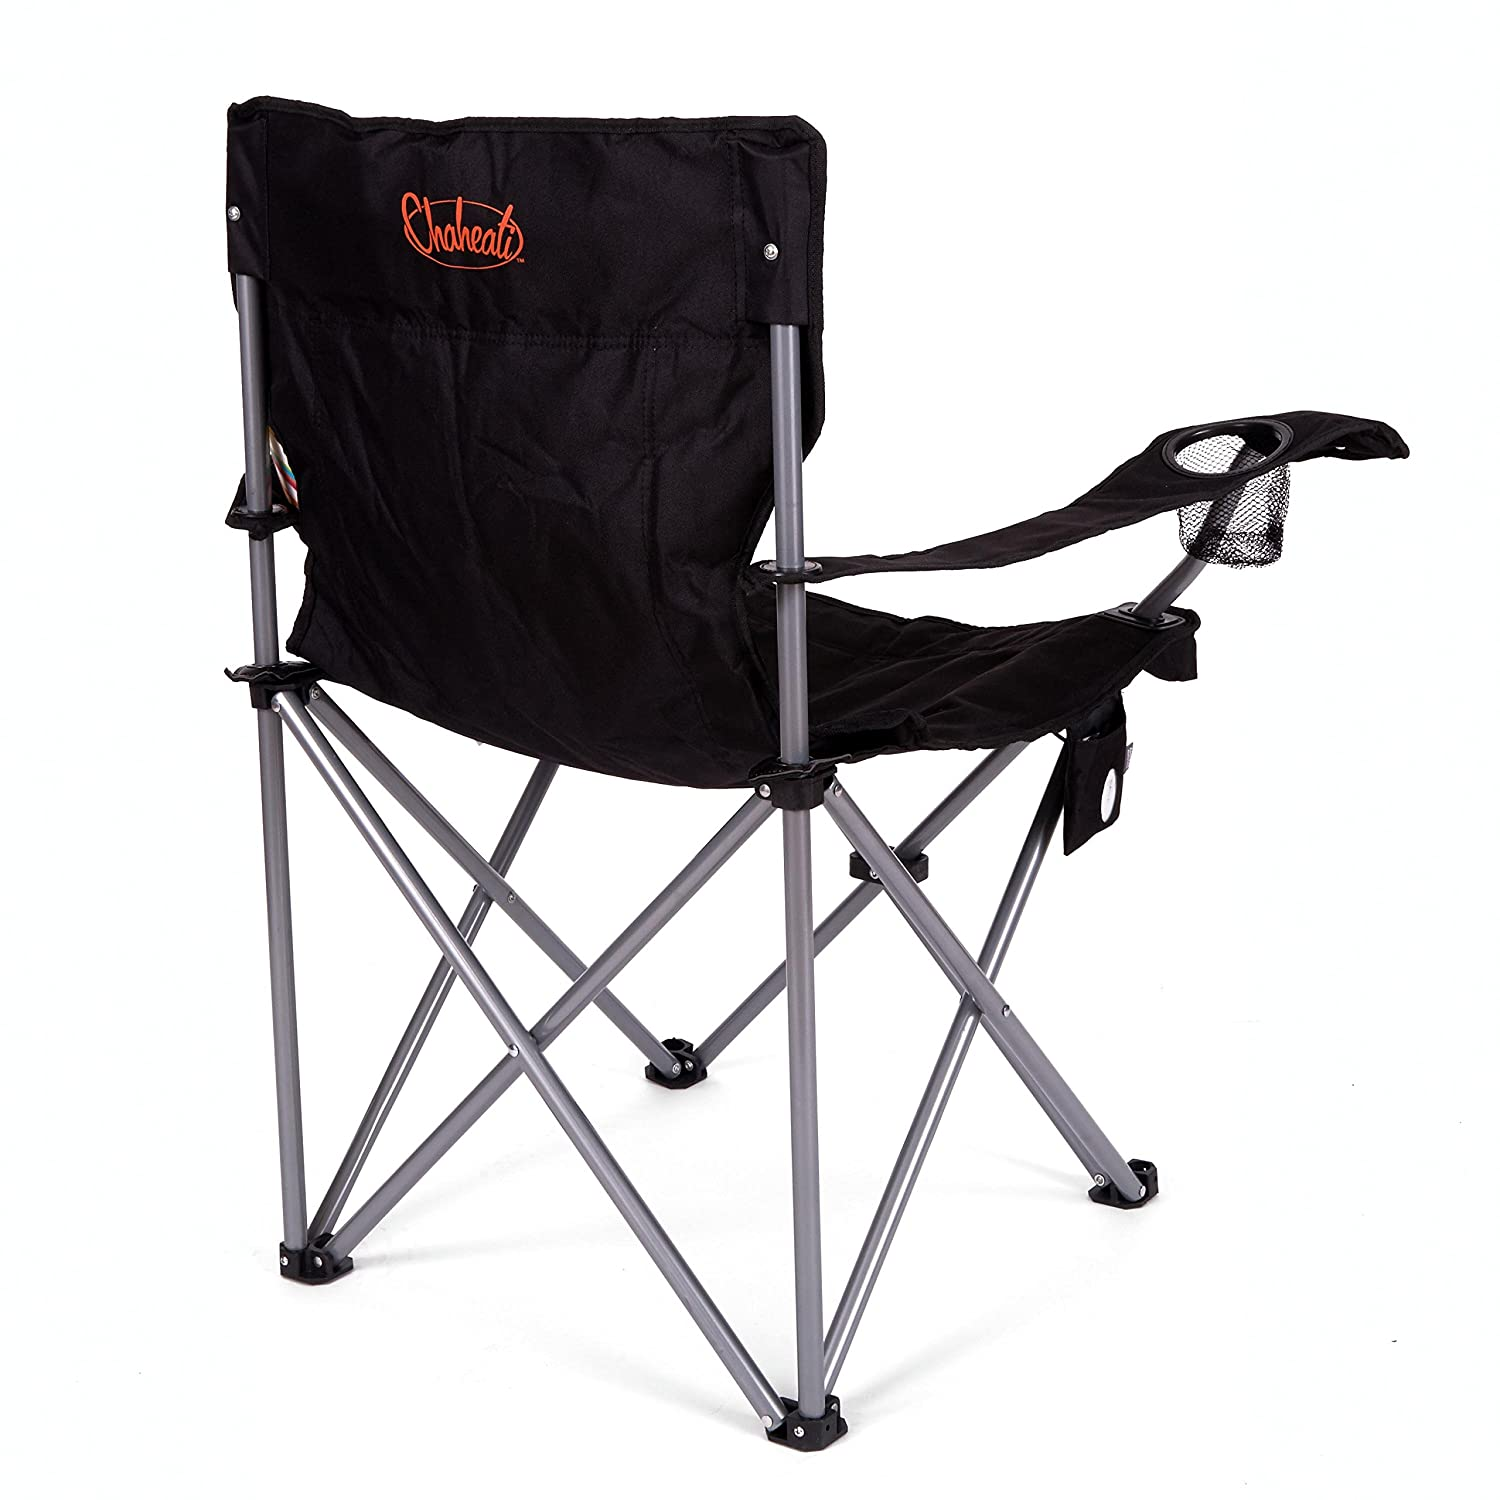 Camping & Hiking Chairs New Double Inflatable Chair Blow Up